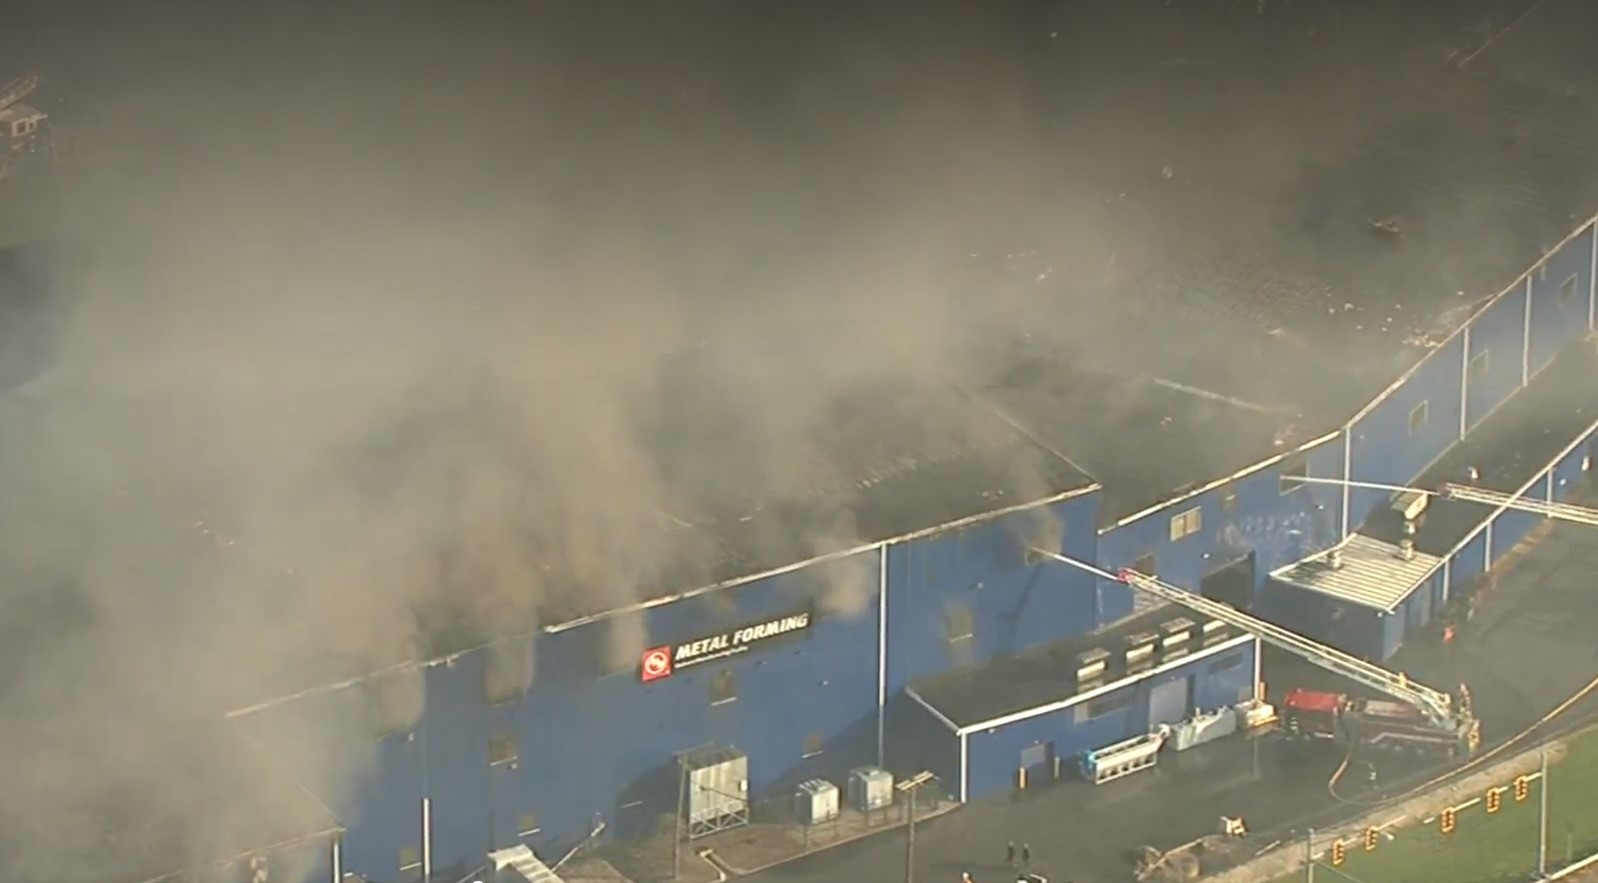 Mechanical Breakdown Triggers Fire at Ohio Auto Parts Plant